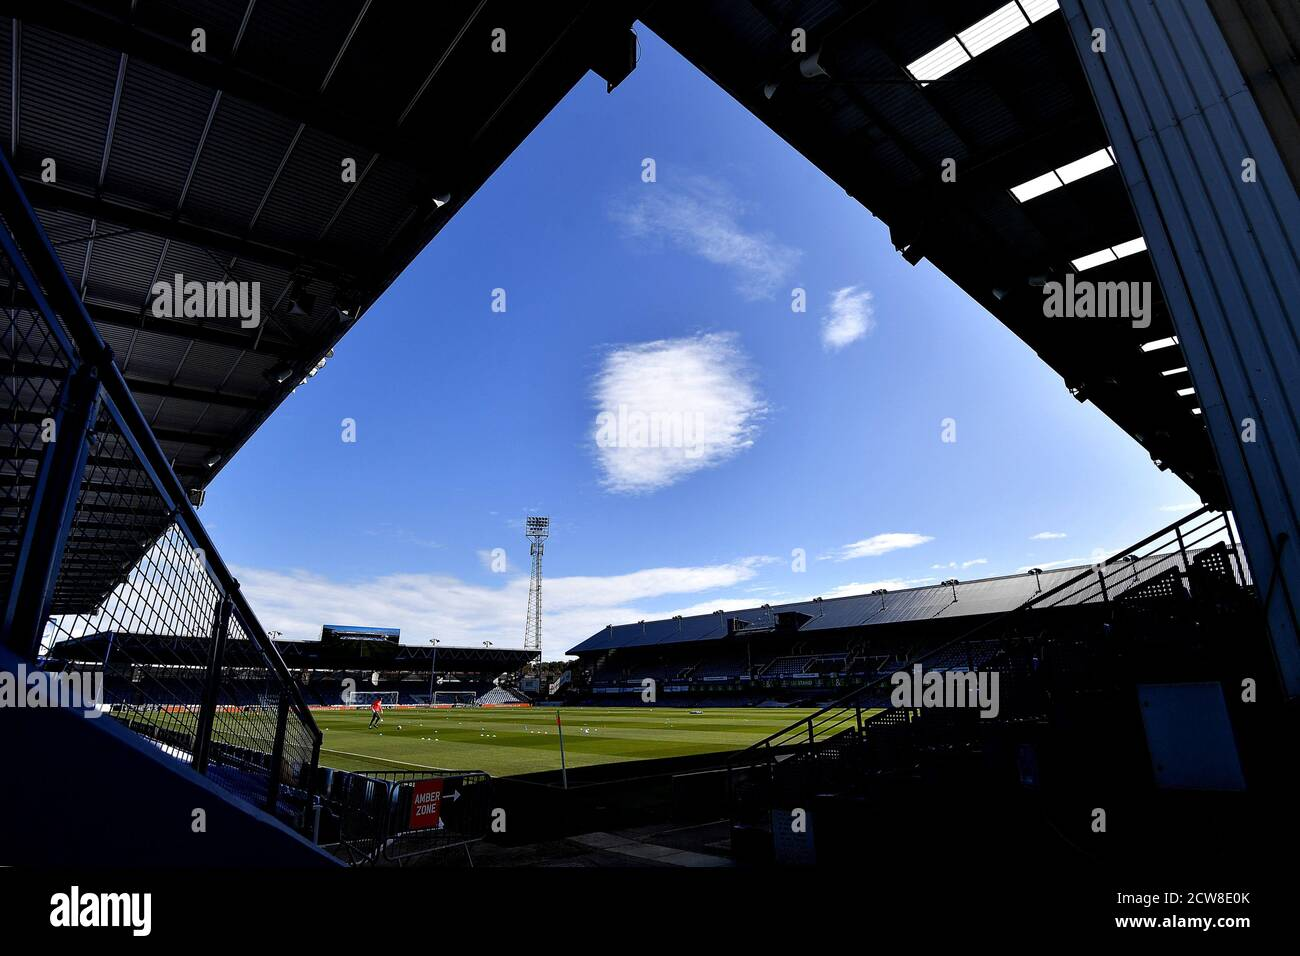 A general view of the stadium - Portsmouth v Wigan Athletic, Sky Bet League One, Fratton Park, Portsmouth, UK - 26th September 2020  Editorial Use Only - DataCo restrictions apply Stock Photo